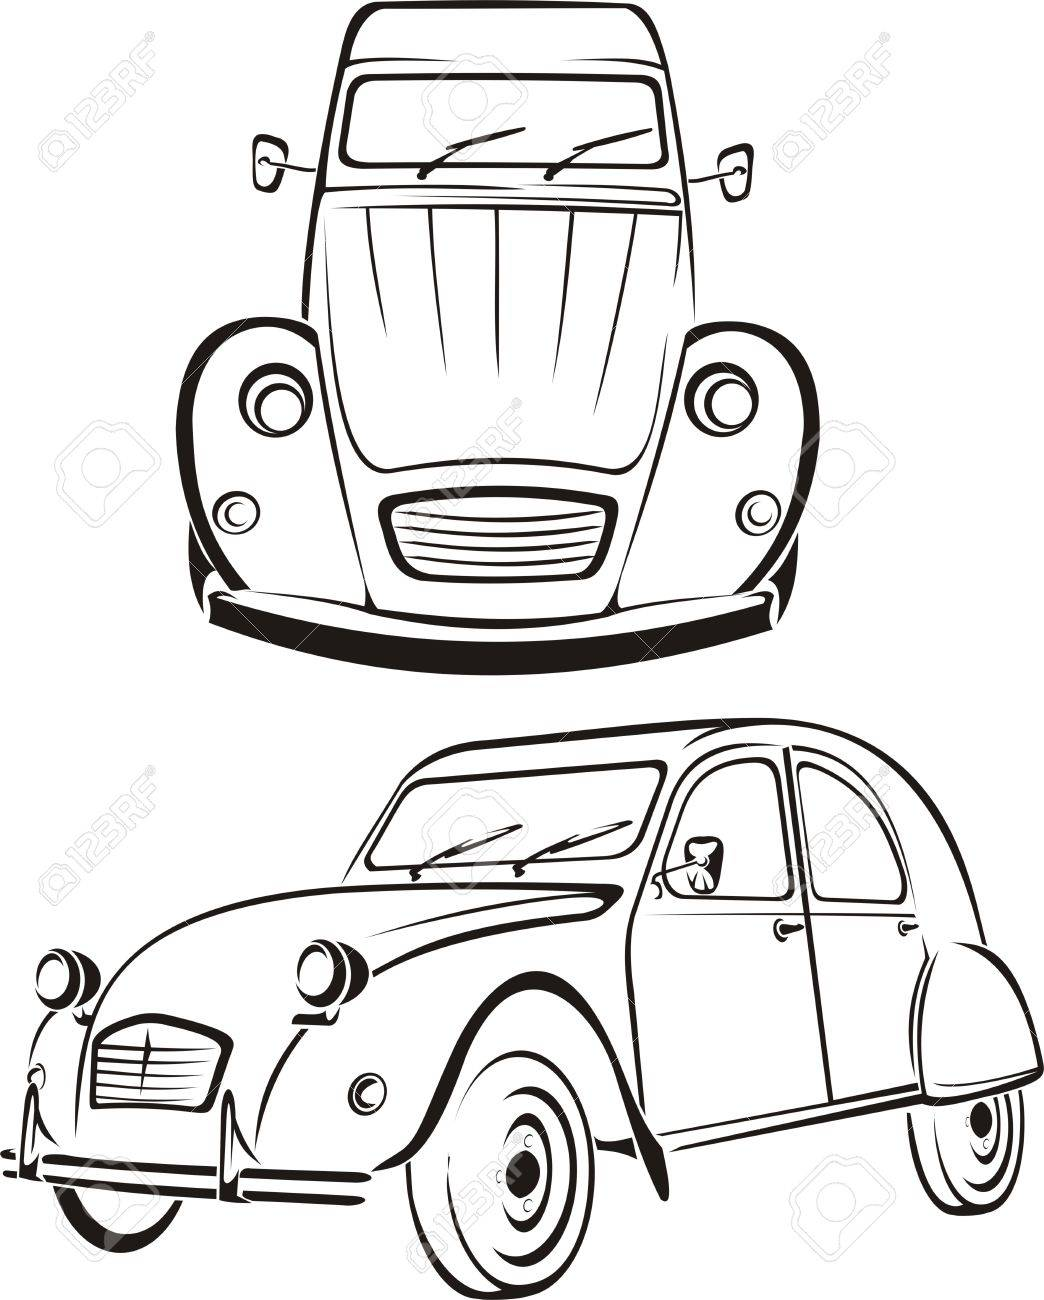 Old car old line of cars royalty free cliparts vectors and stock